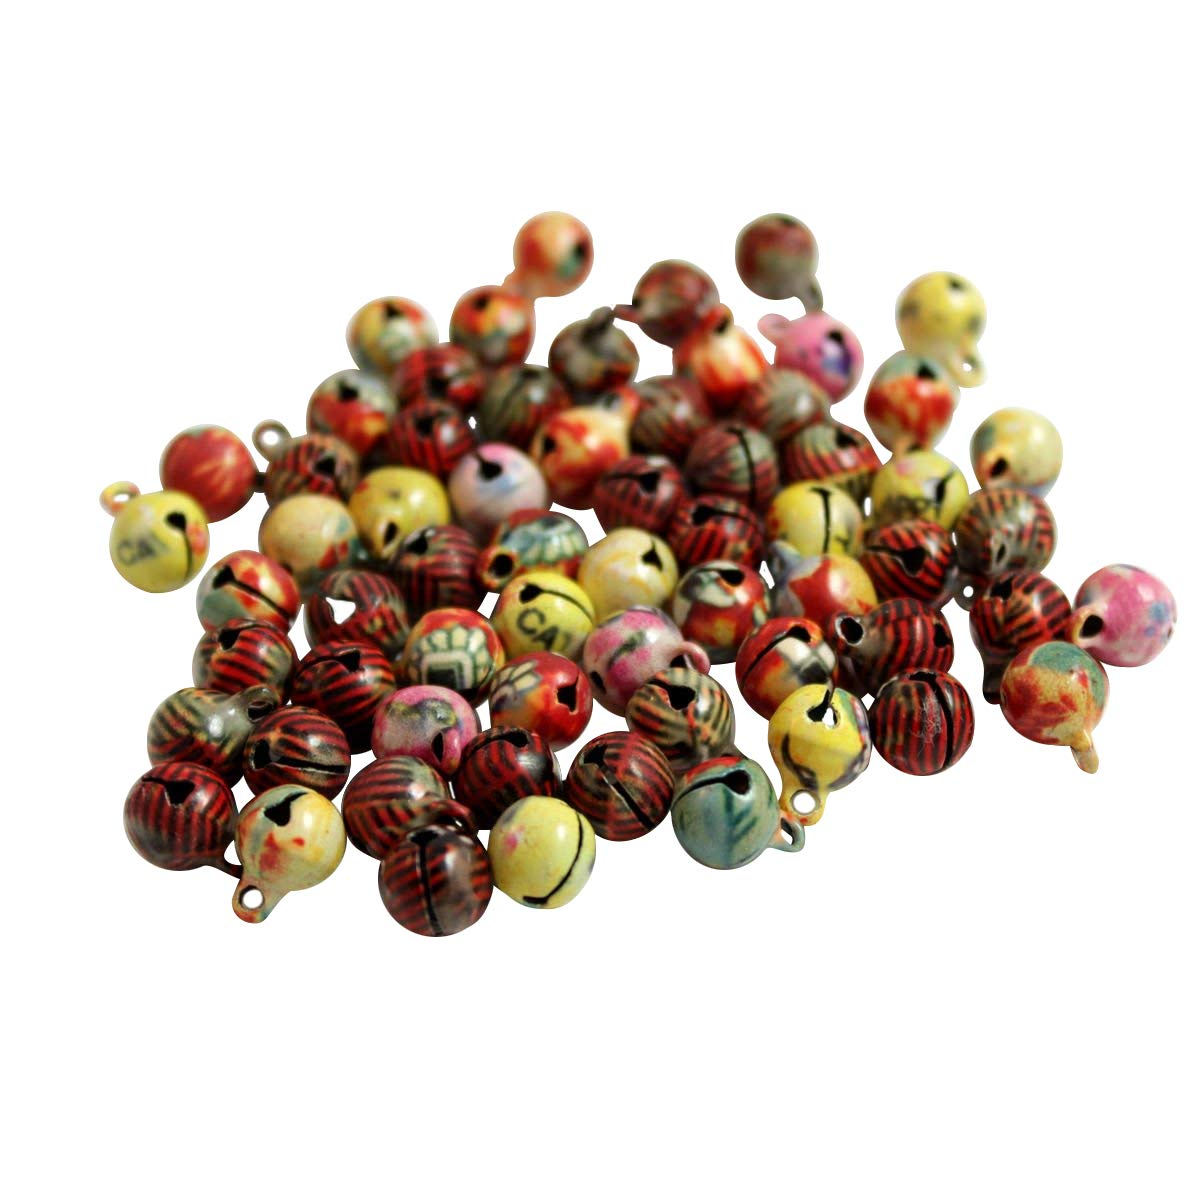 11 x 7 mm pink Kleenes TH Pack of 100 Small Copper Bells 11 x 7 mm